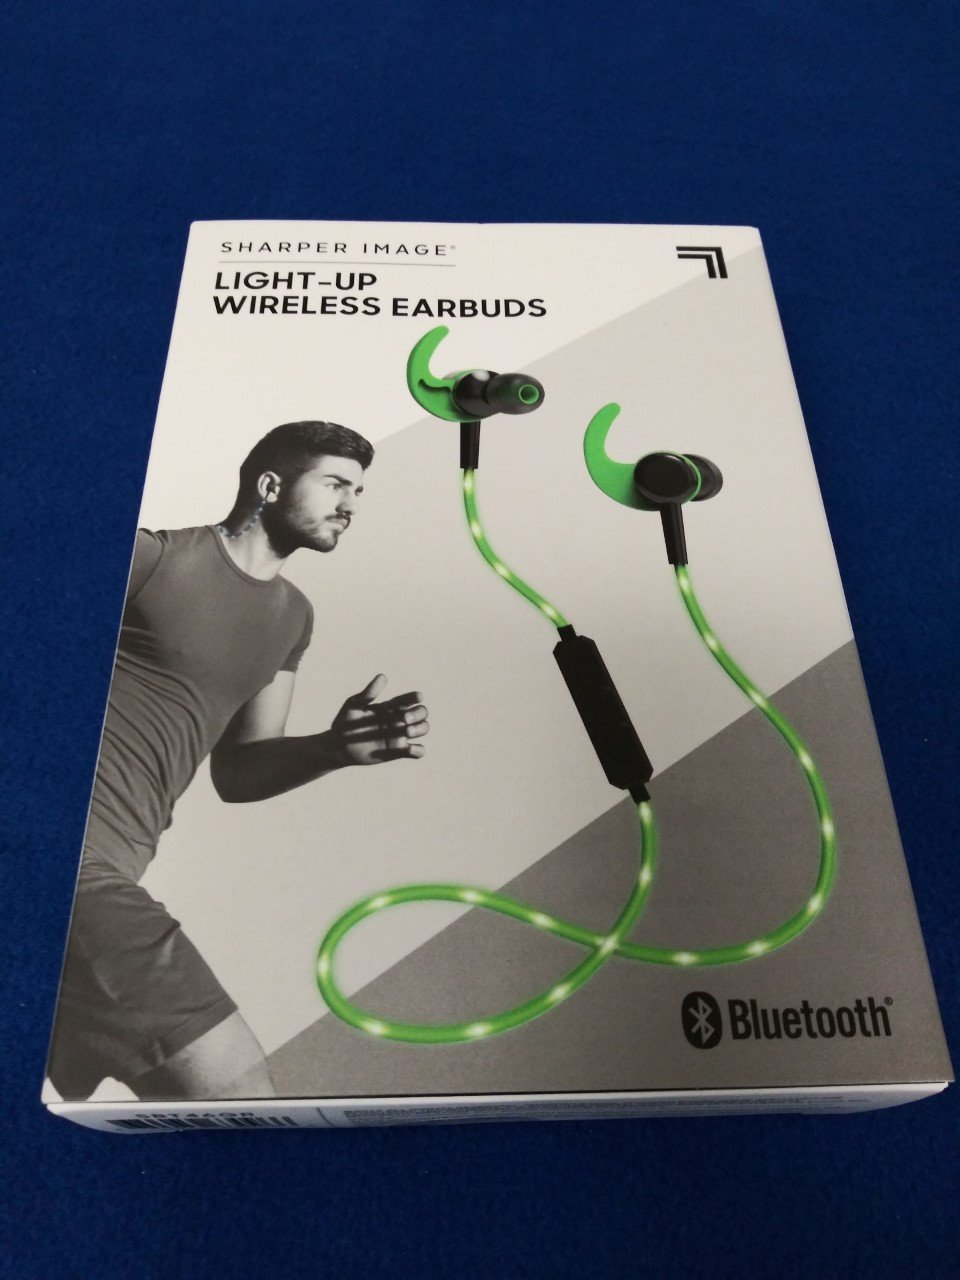 Sharper Image Light-Up LED Bluetooth Earbuds - Green